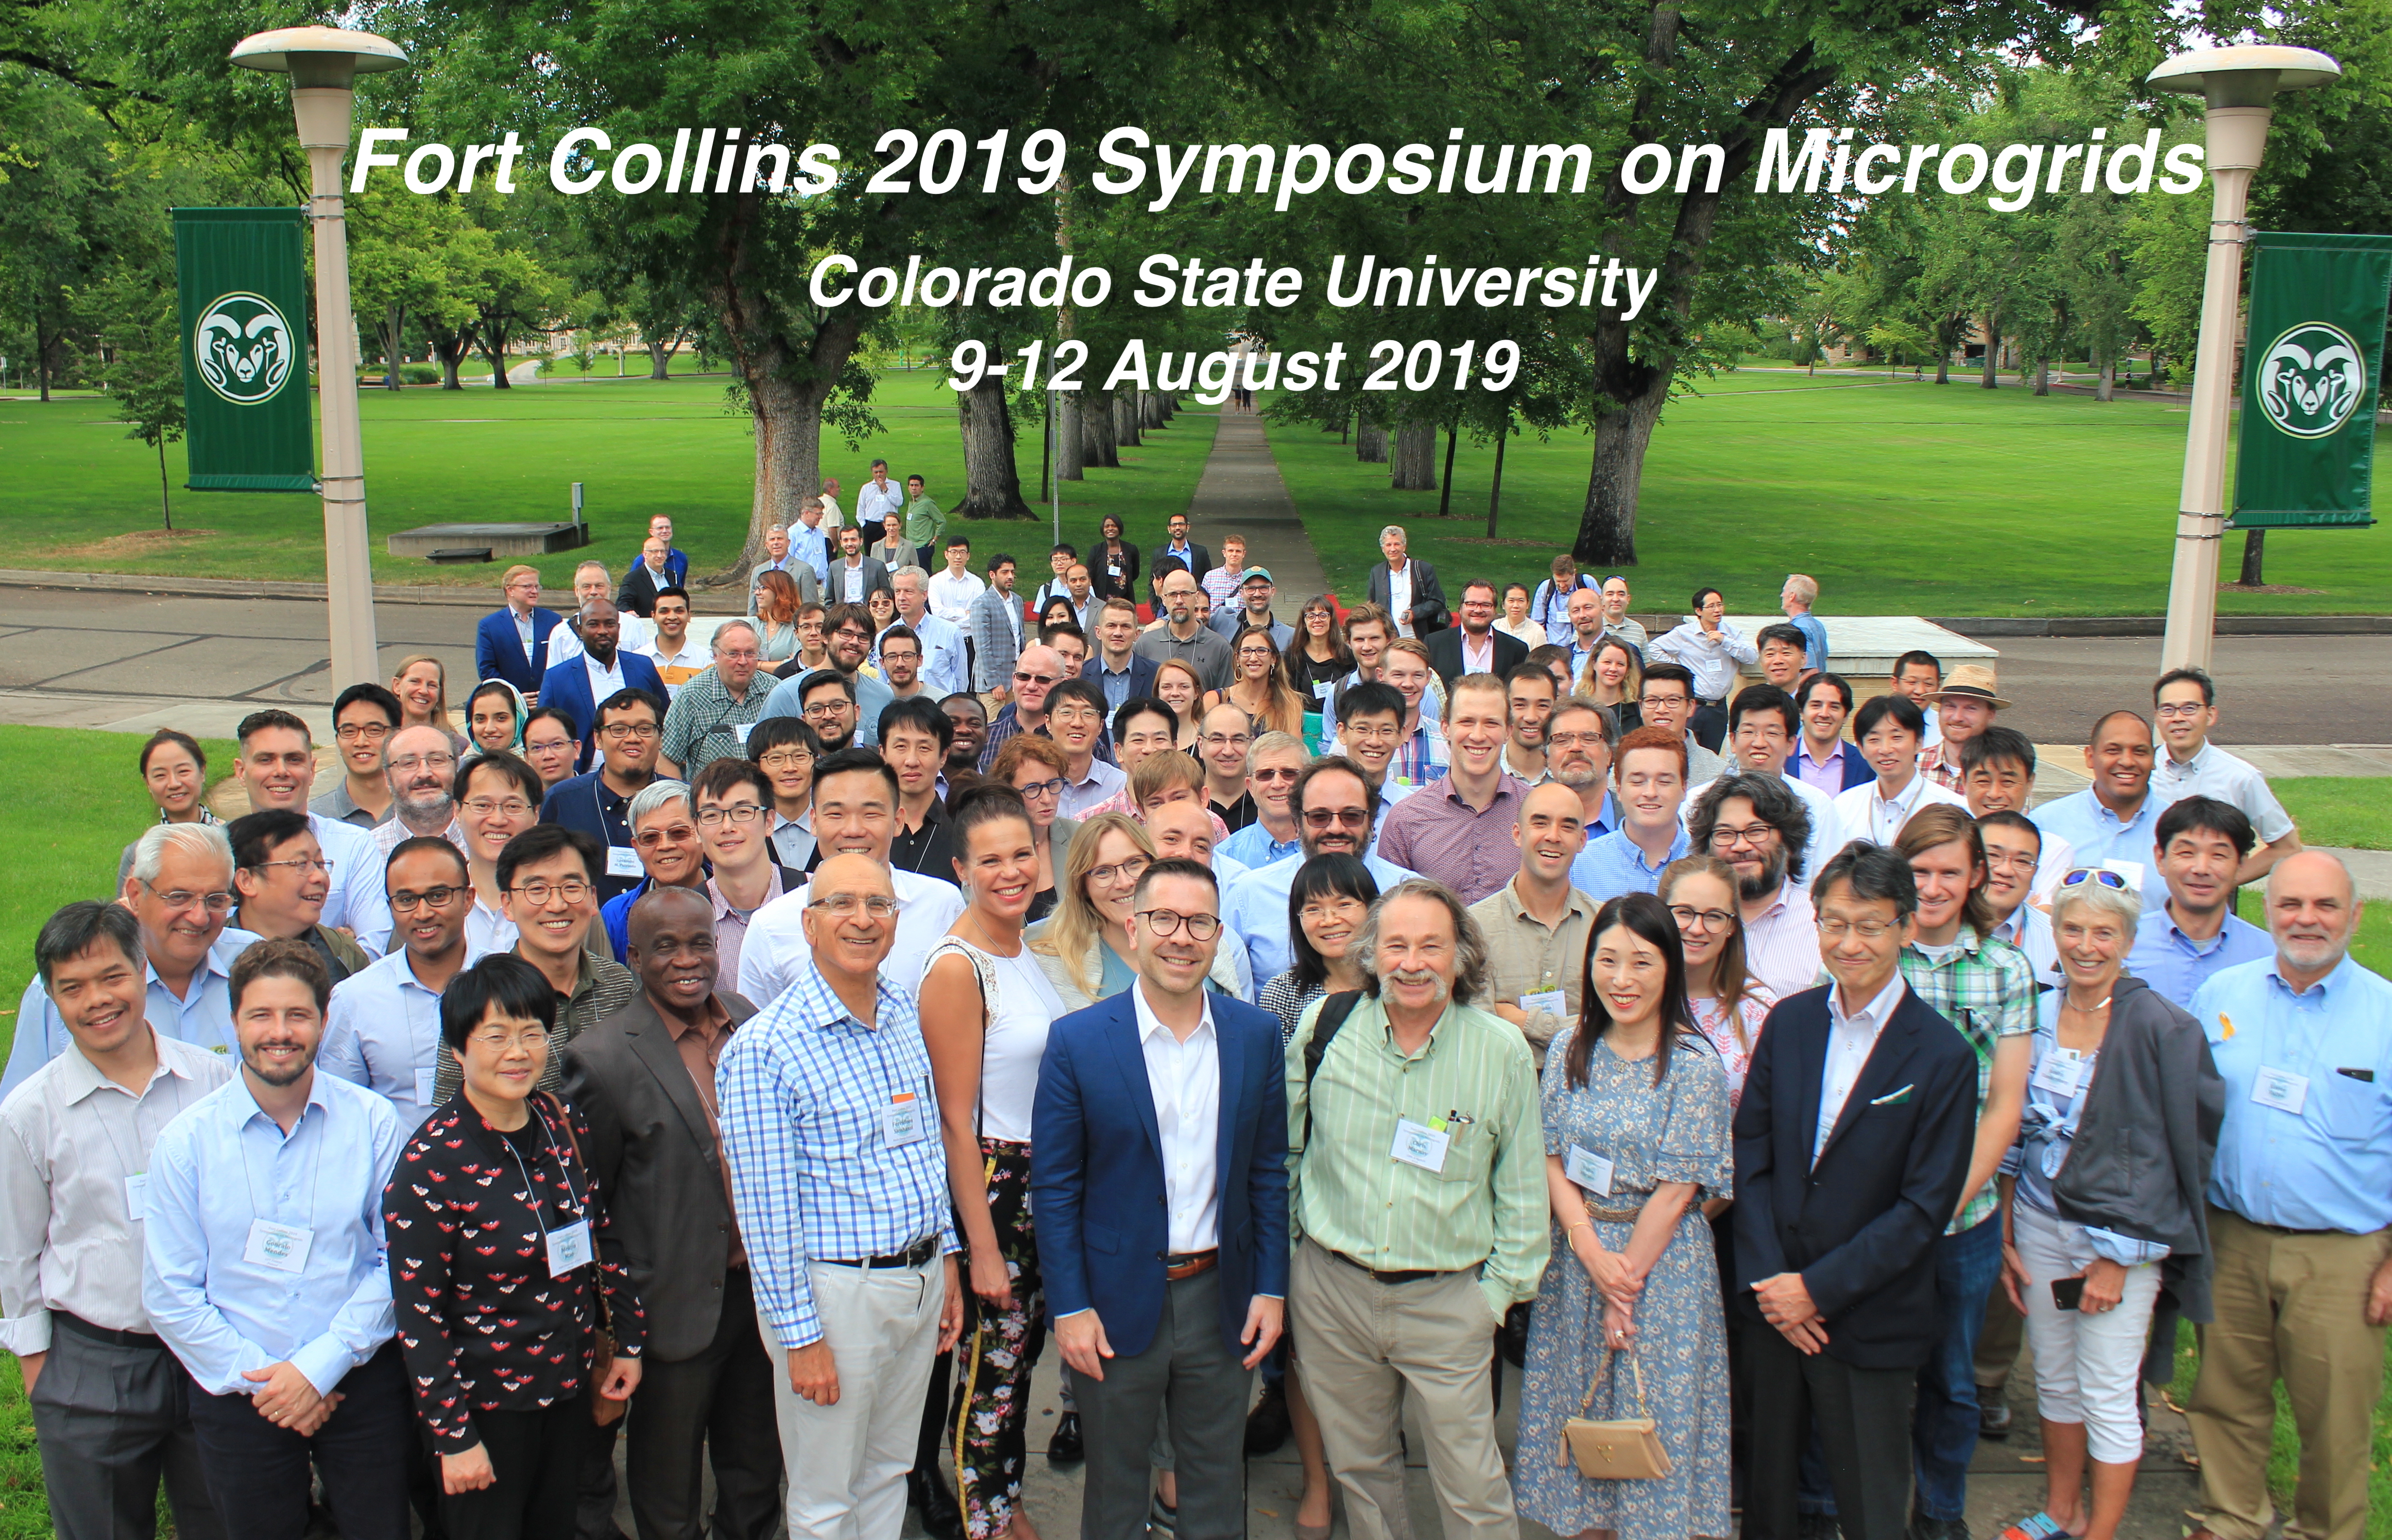 FortCollins2019SymposiumOnMicrogrids